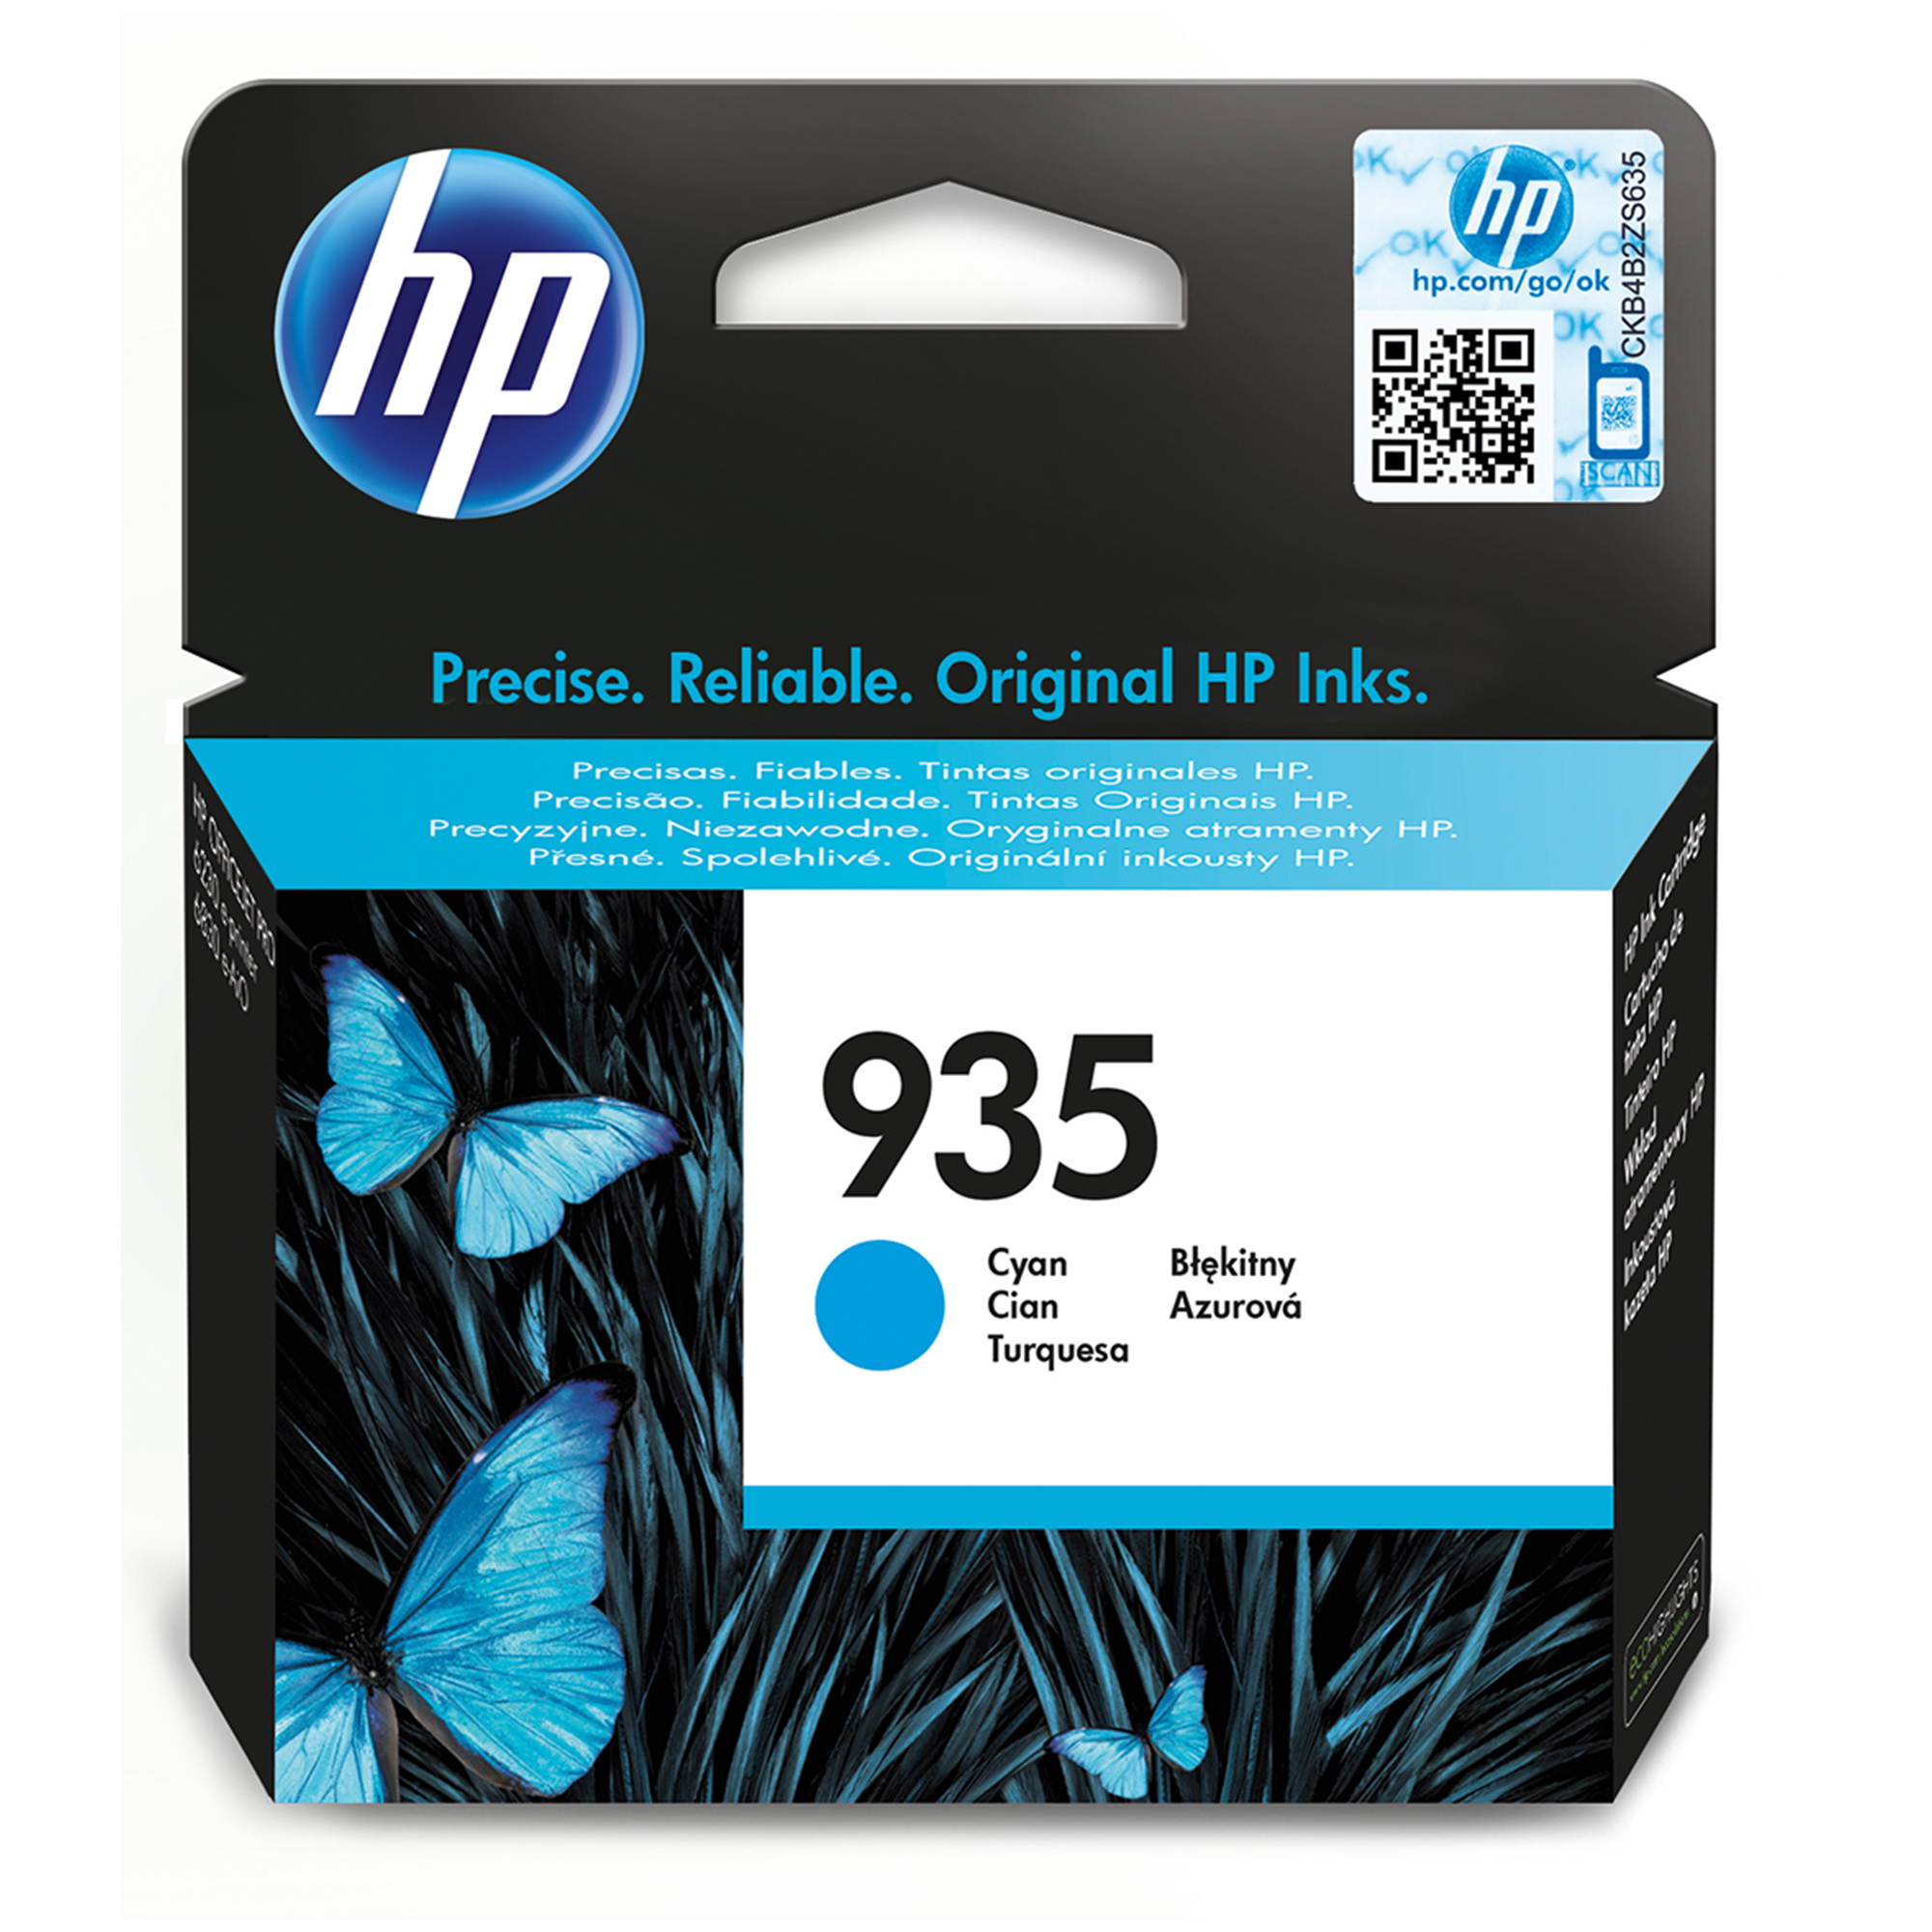 Hp - Inkjet Supply Mvs (1n)      Ink Cartridge No 935 Cyan           De/fr/nl/be/uk/se/it                C2p20ae#bgx